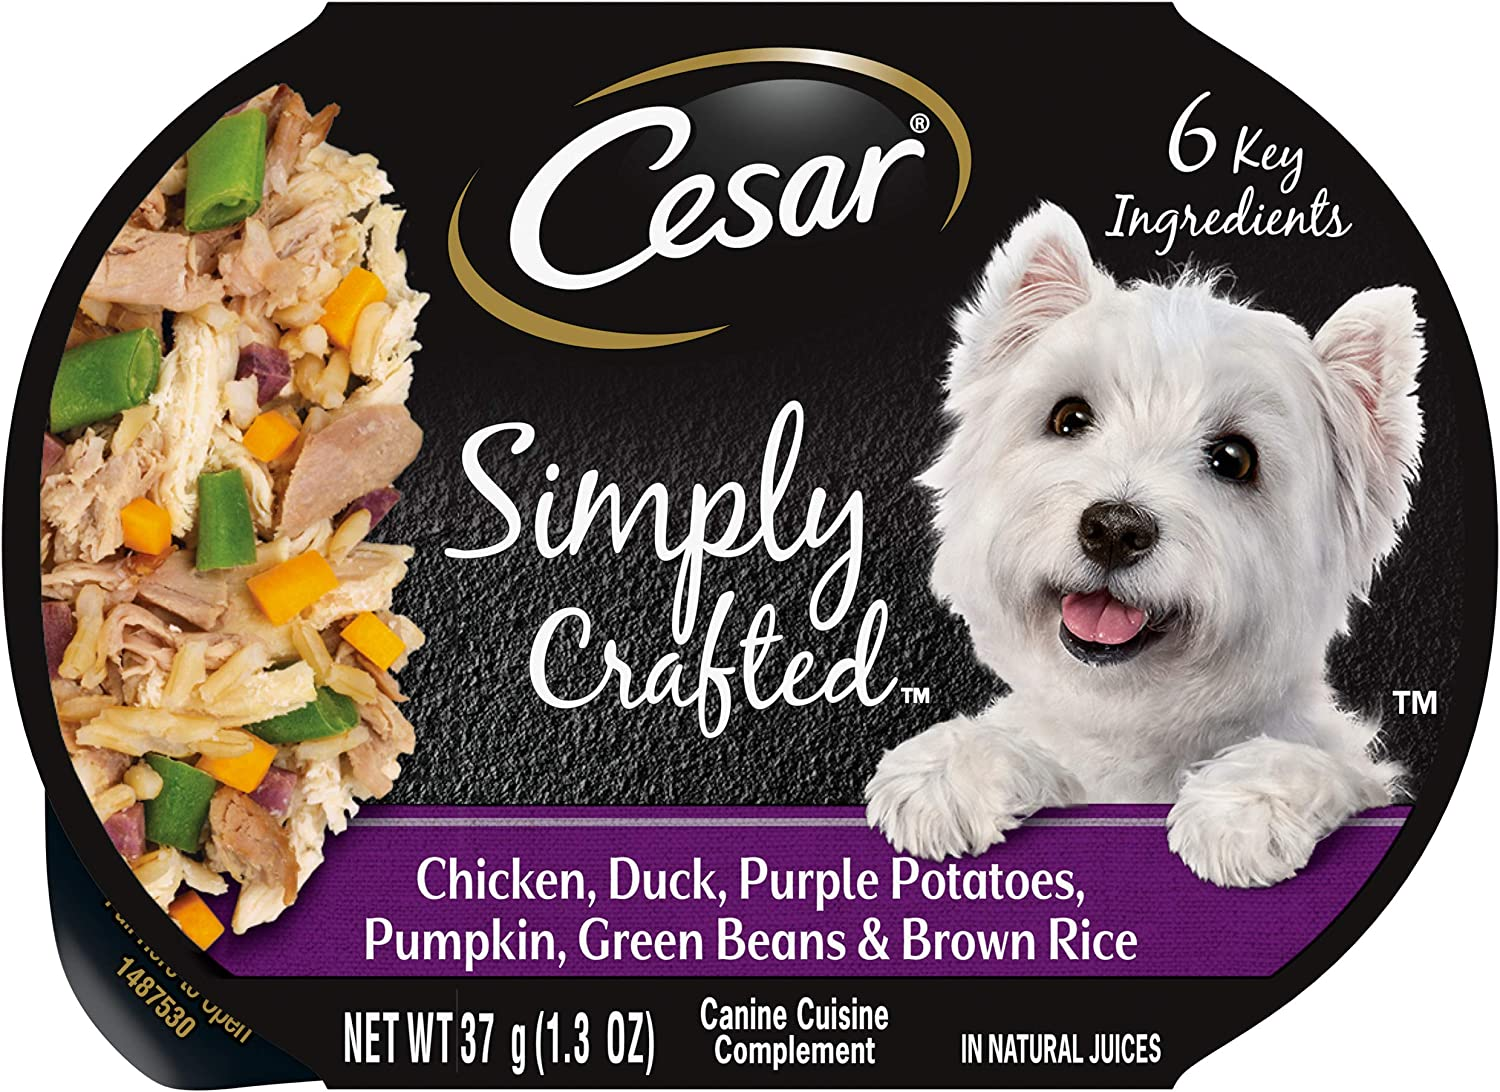 CESAR Simply Crafted Adult Soft Wet Dog Food Meal Topper, Chicken, Duck, Purple Potatoes, Pumpkin, Green Beans & Brown Rice, (10) 1.3 oz. Tubs